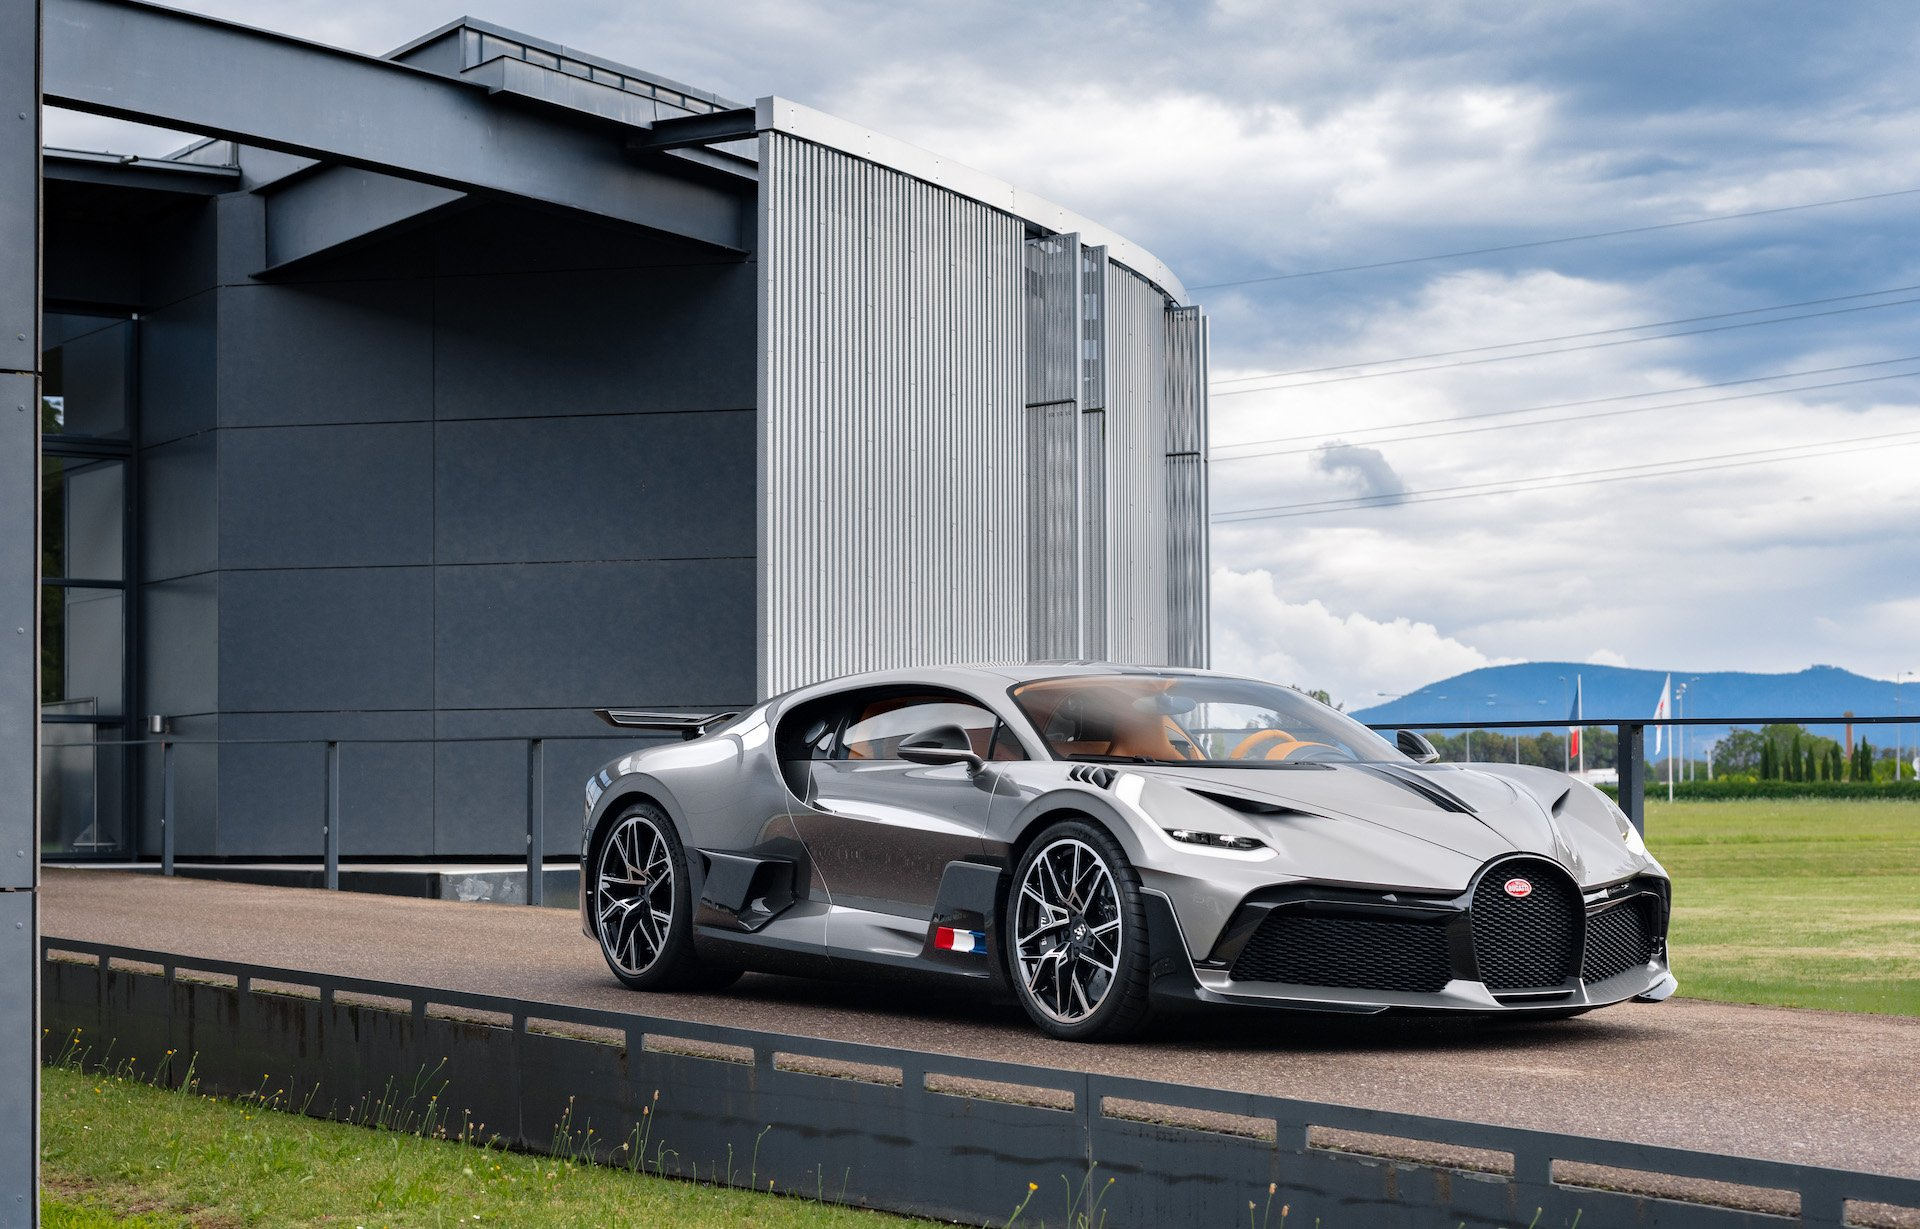 Deliveries Of The Rm25 Mil Bugatti Divo Hypercar Begins Free Malaysia Today Fmt